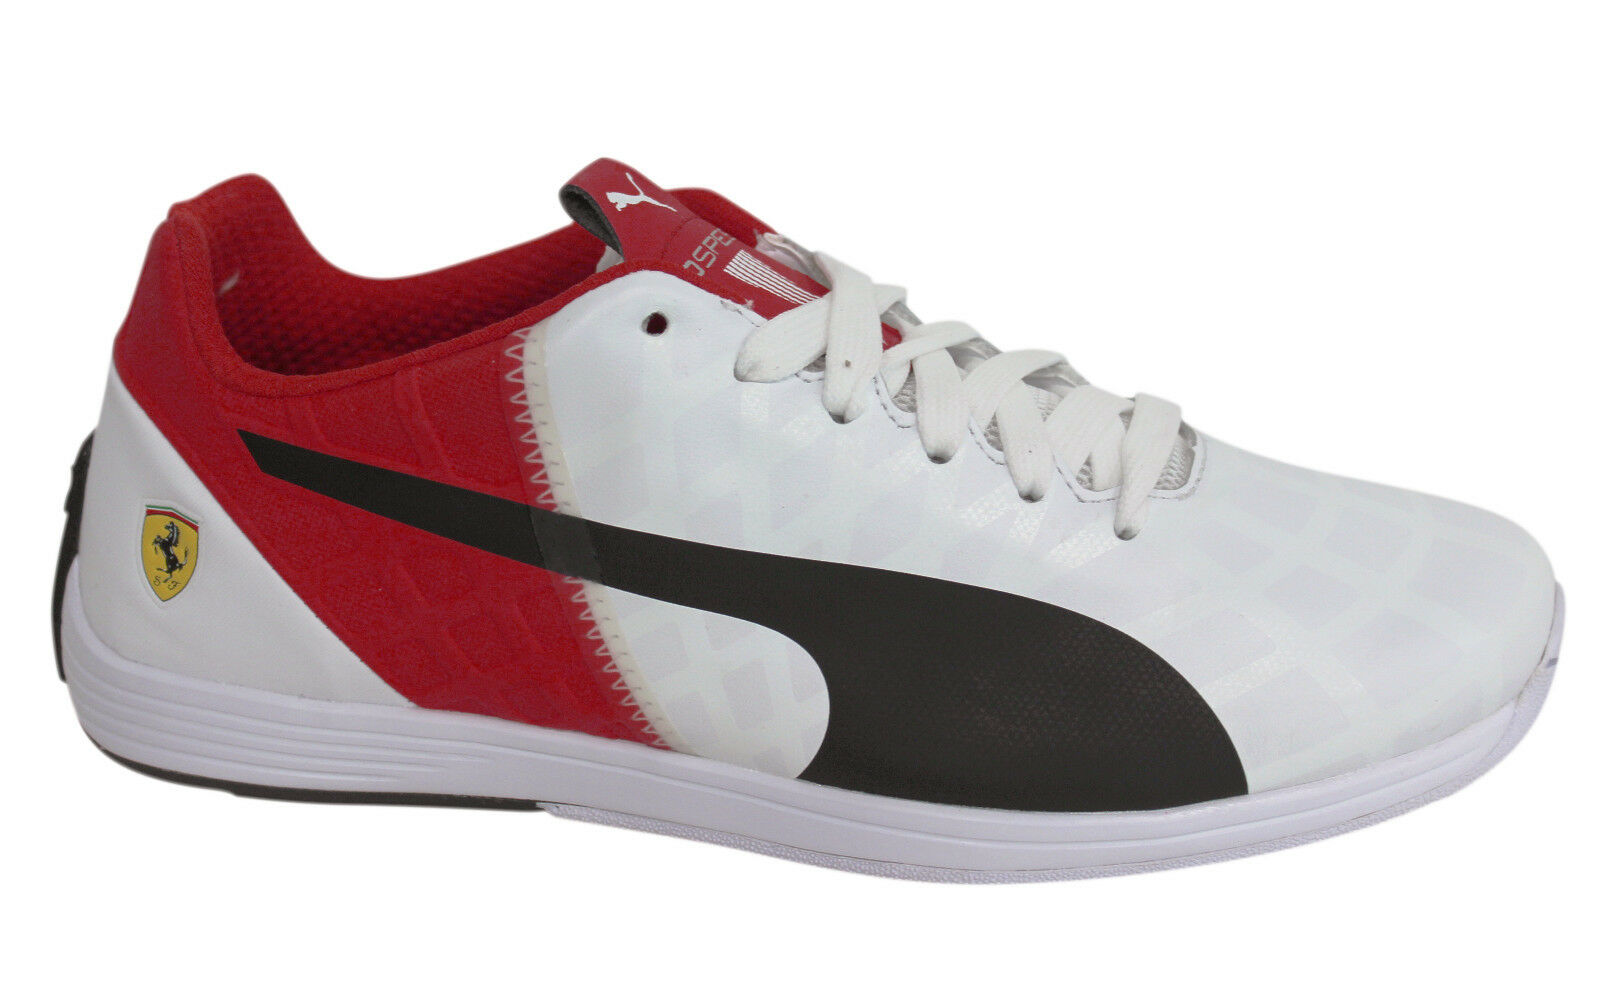 Puma evoSPEED 1.4 Lace Up White Red Leather Mens Trainers 305555 03 M7